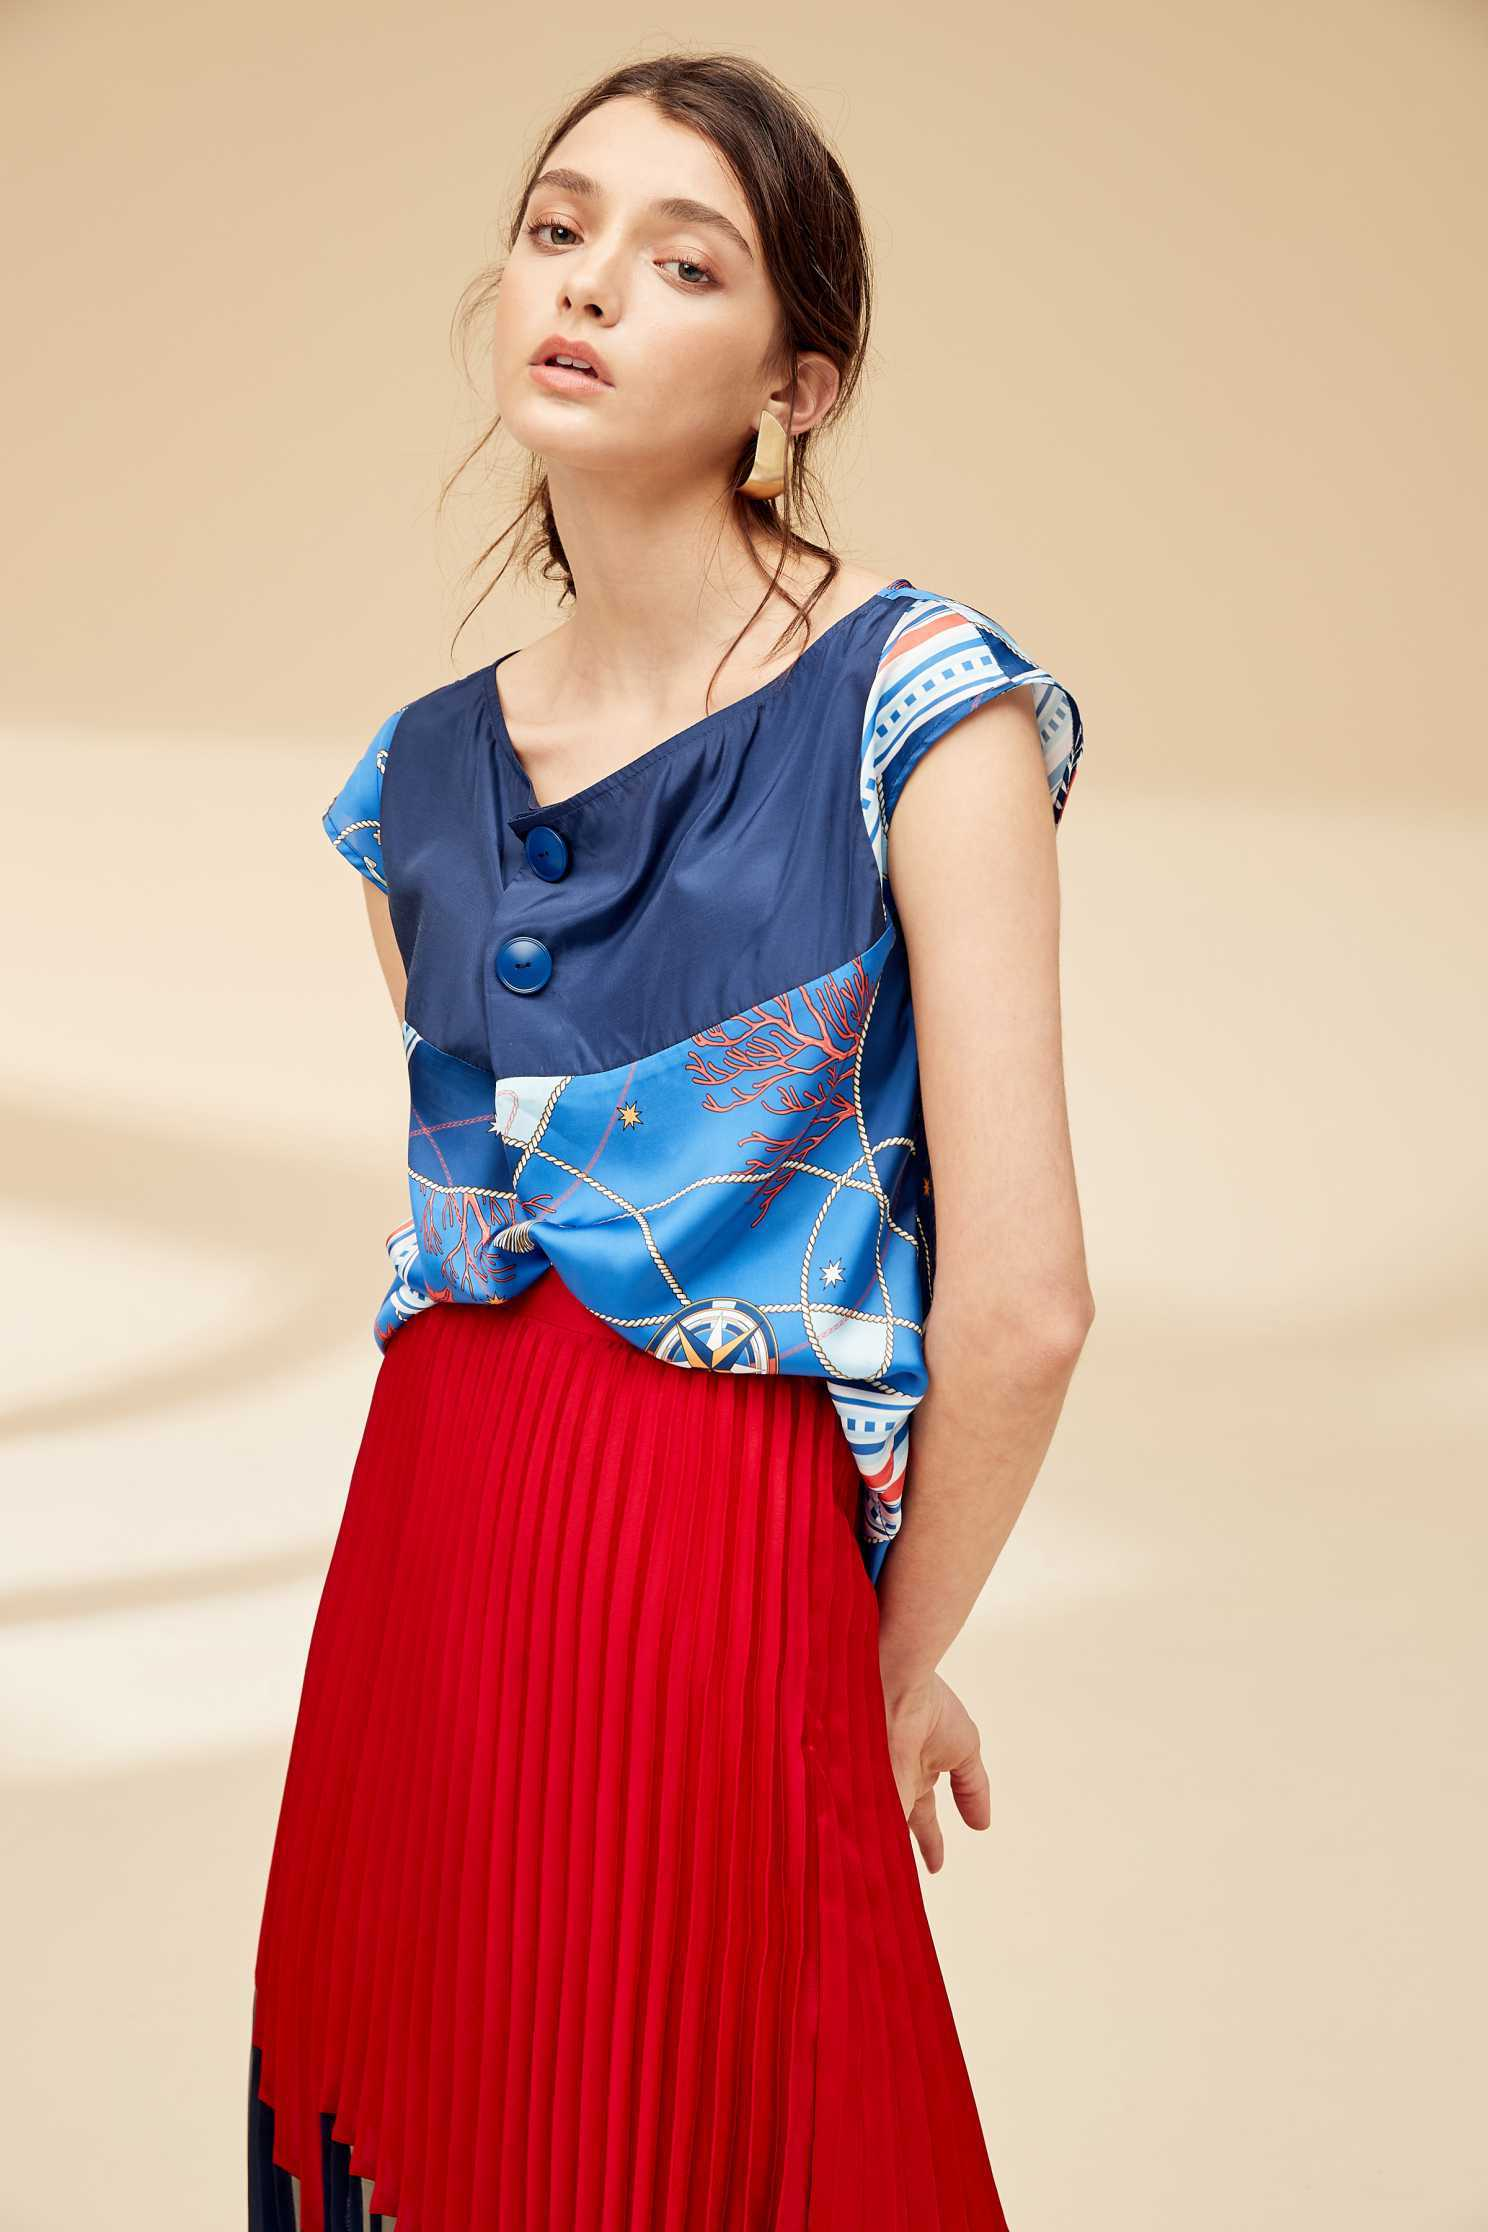 Ocean sytle fashion top,top,roundnecktop,shortsleevetop